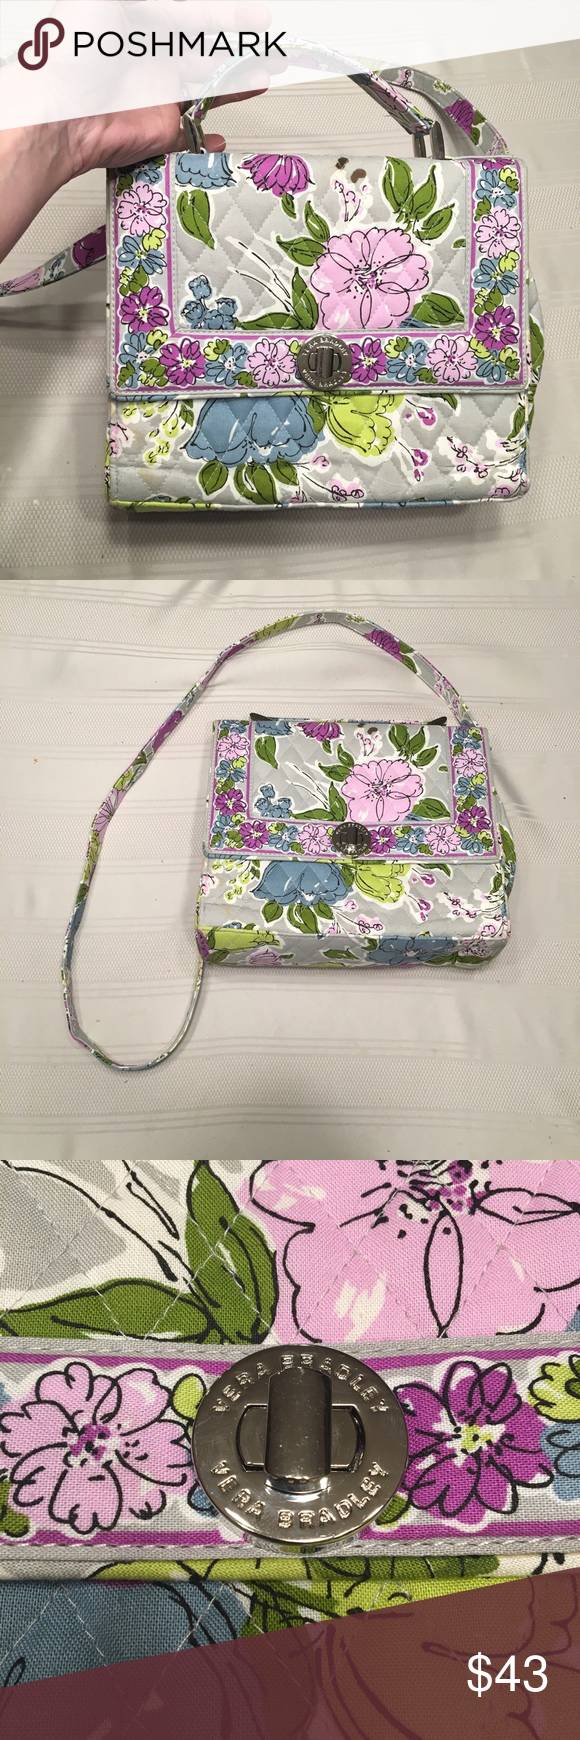 Very Bradley Purse Like new condition Vera Bradley purse. Bright, colorful pattern for spring/summer. Vera Bradley Bags Crossbody Bags